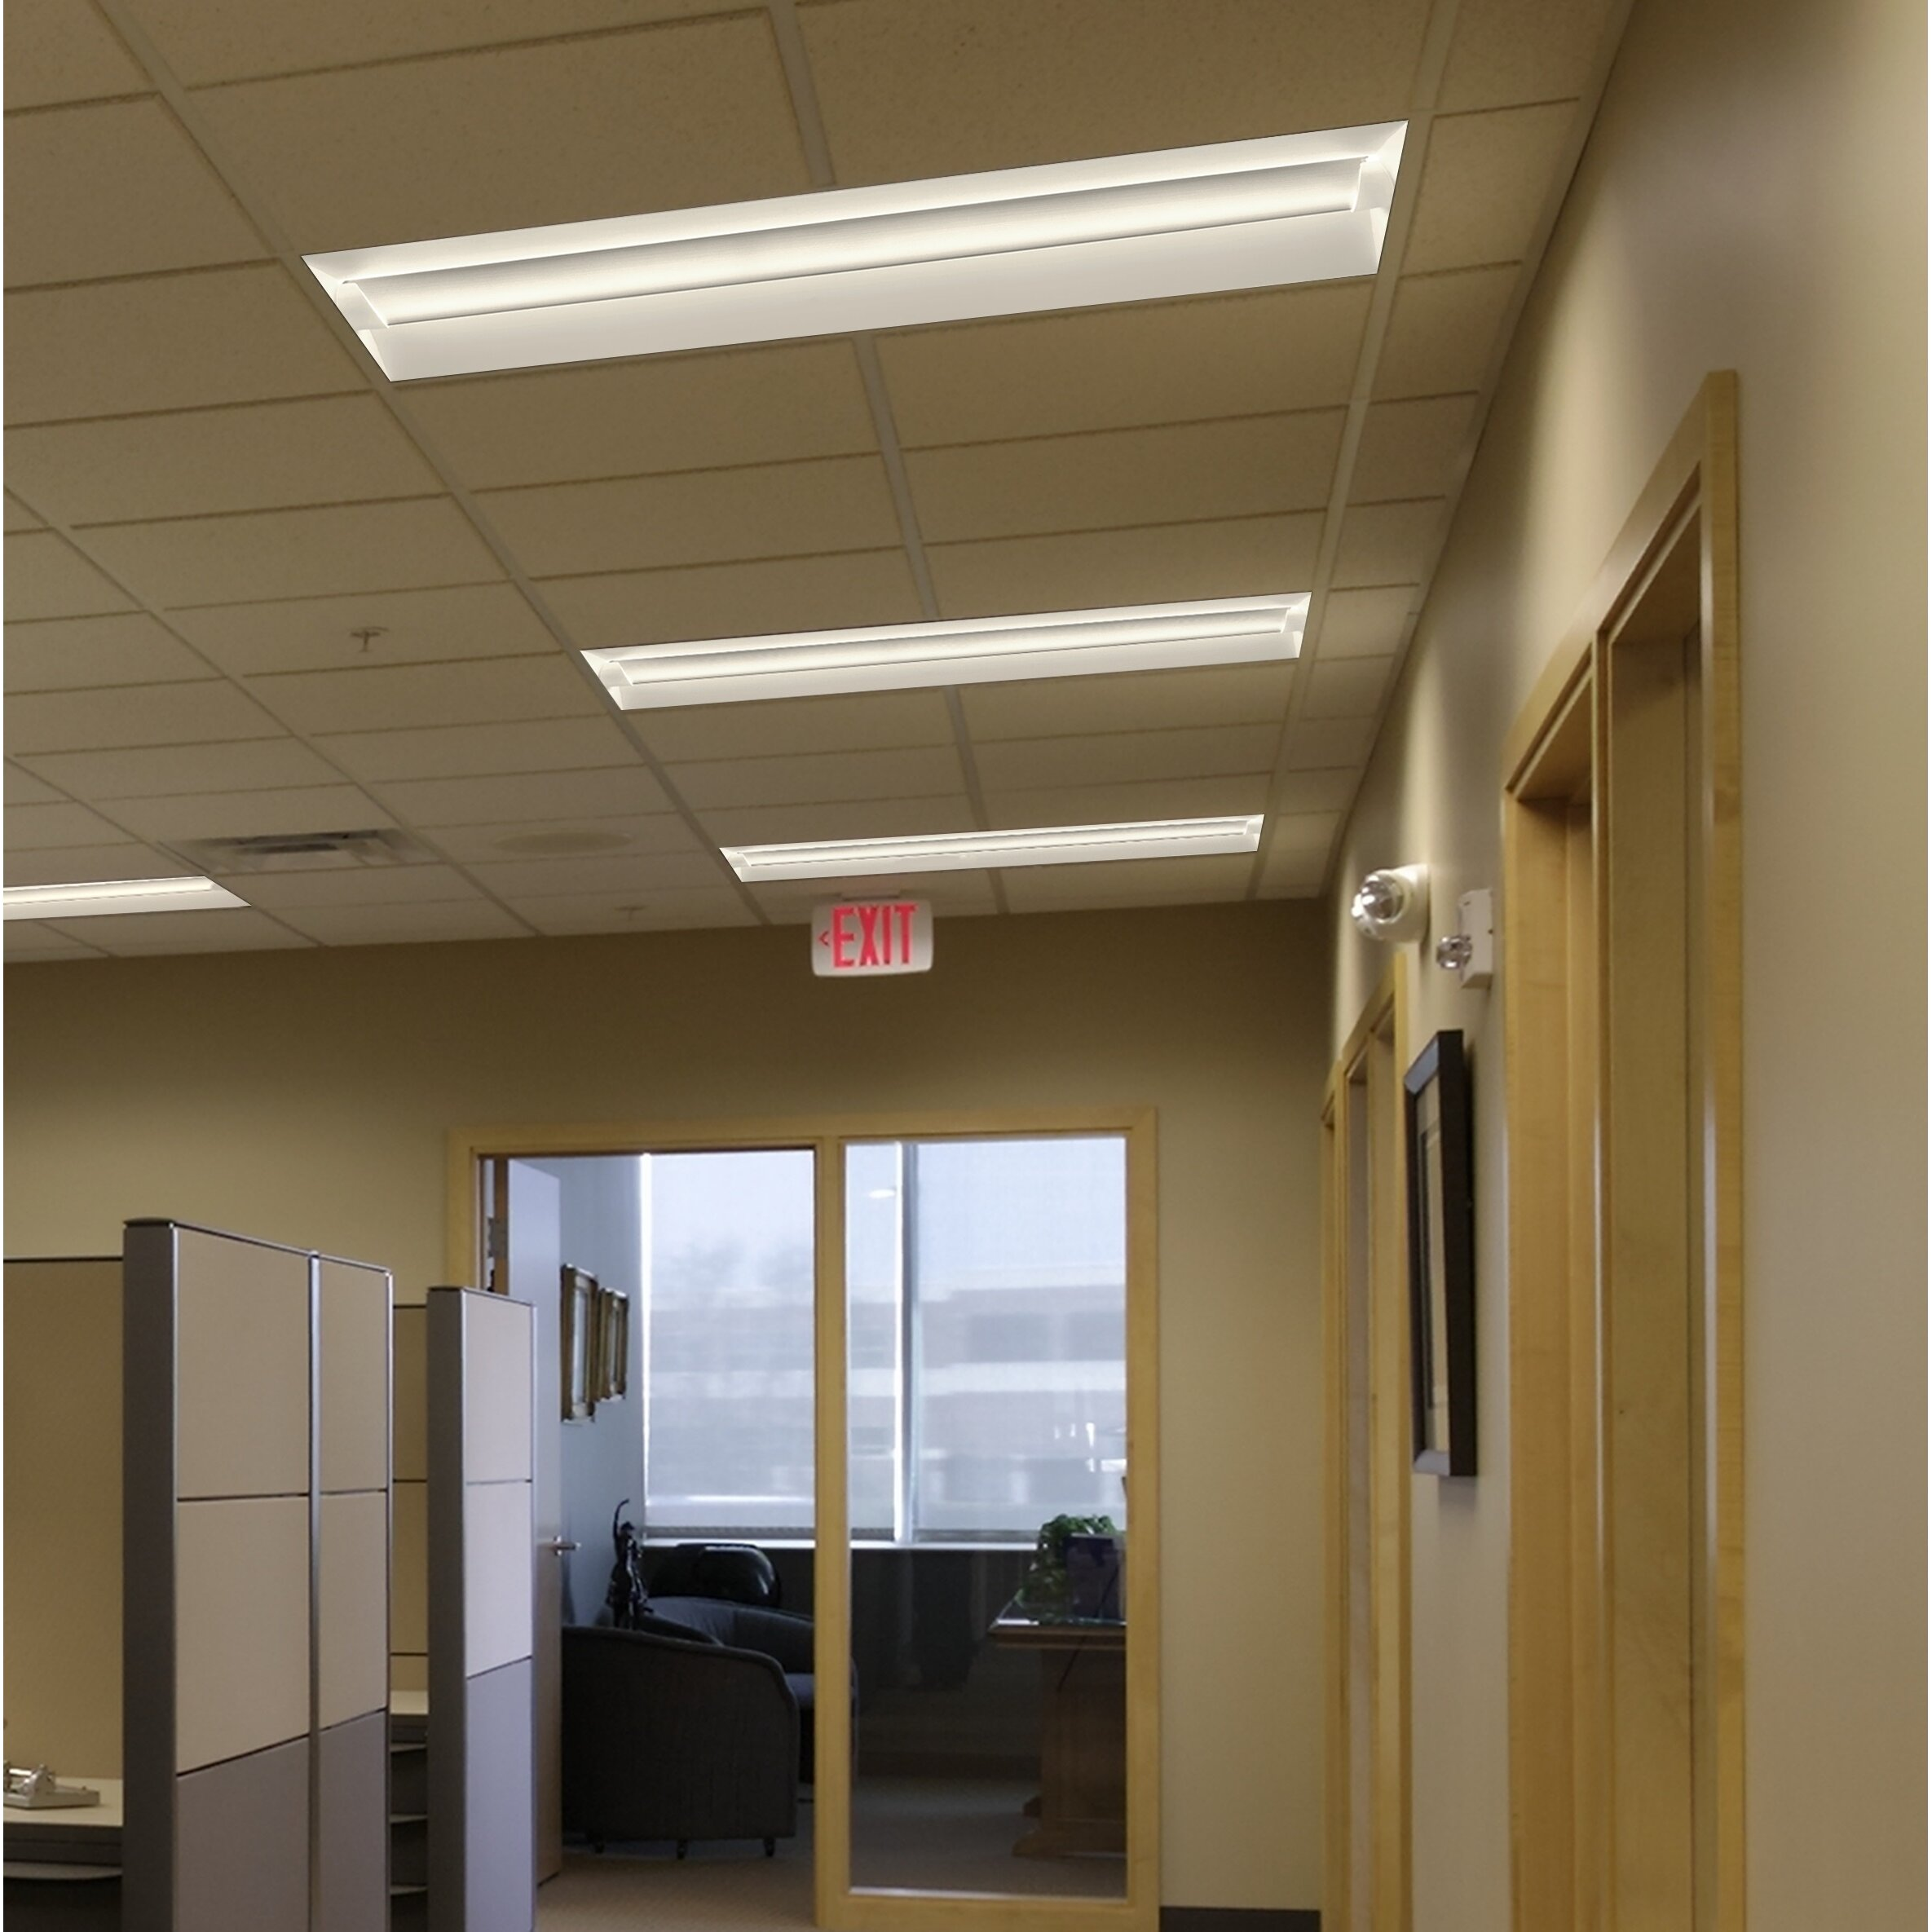 Lithonia Under Cabinet Lighting Lithonia Lighting Blt Series Led Low Profile Recessed Troffer